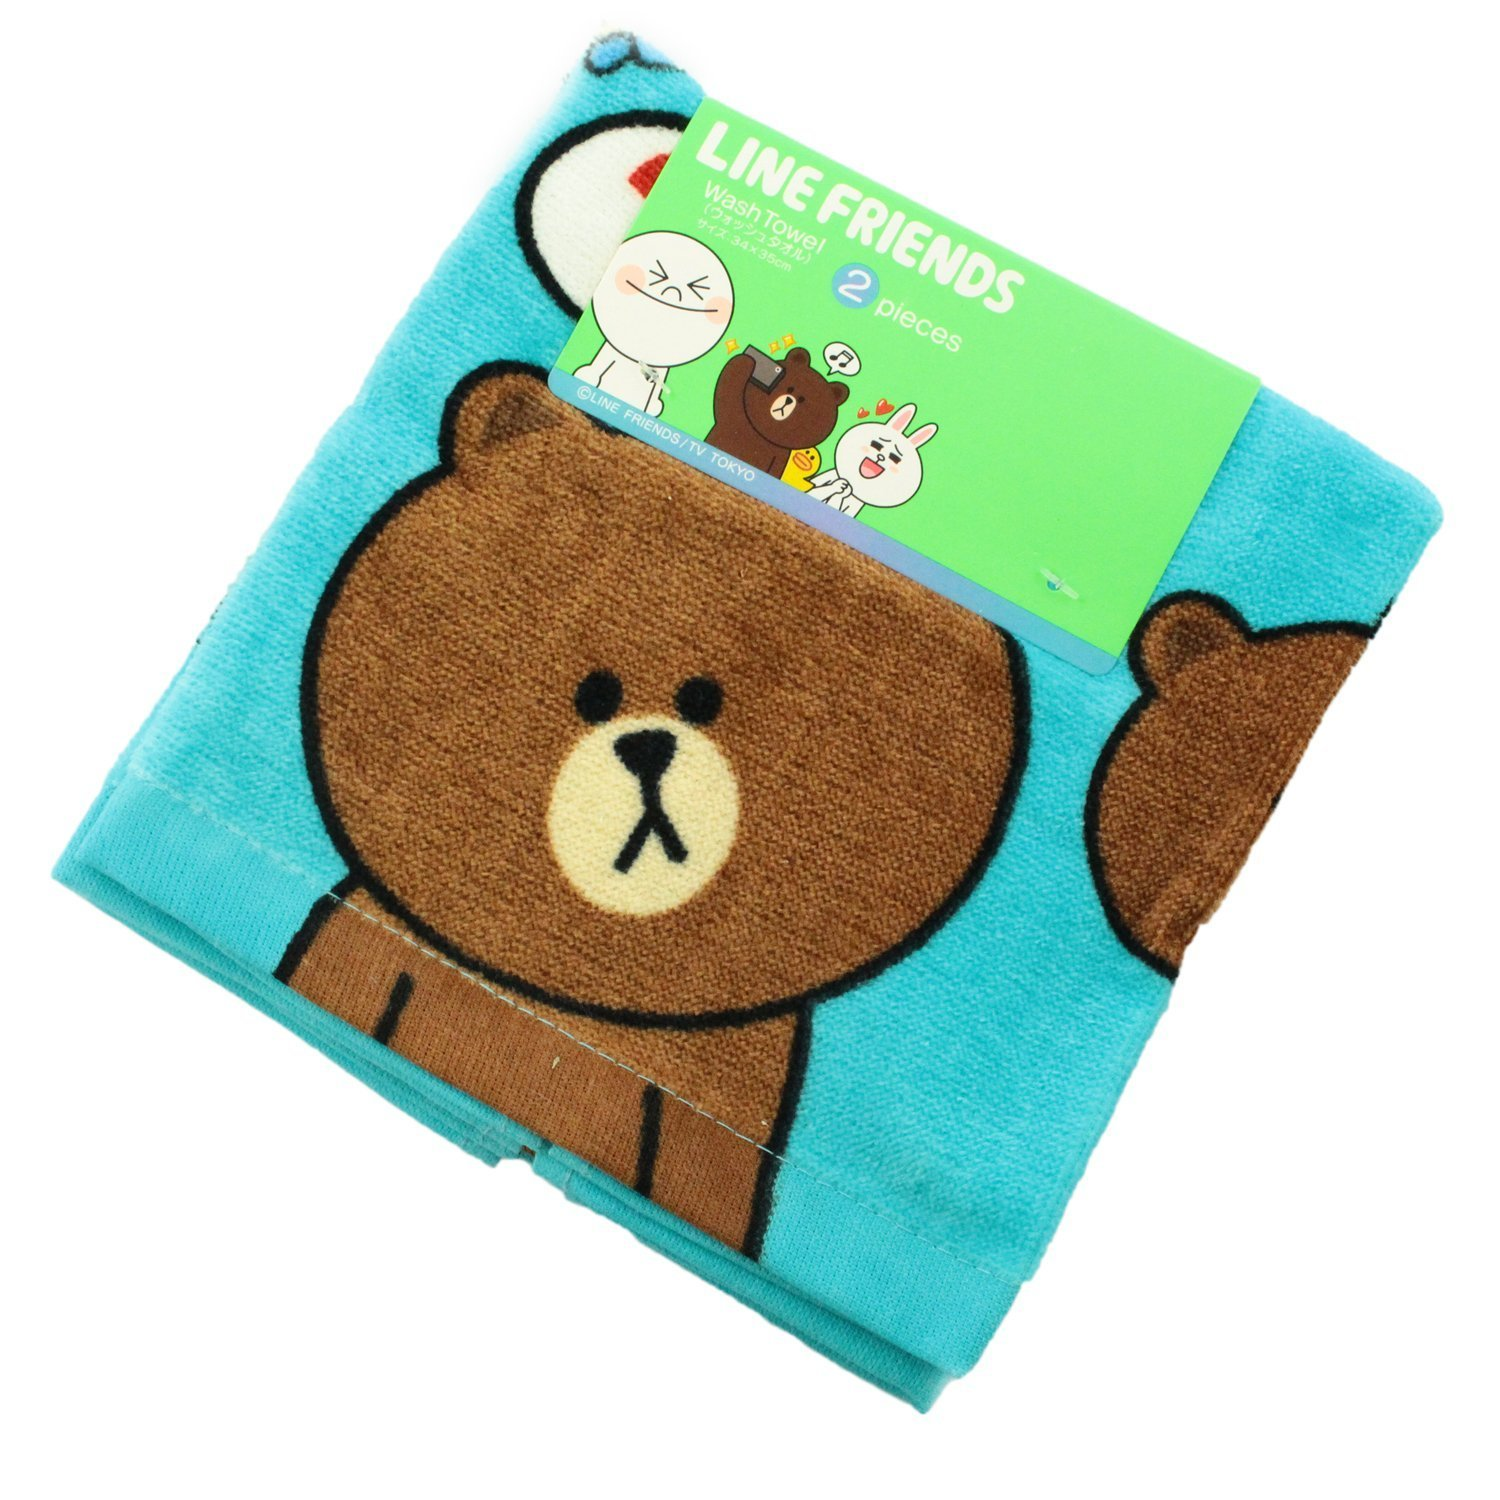 New LINE FRIENDS Brown Wash Towel 2P Set 34 x 35cm from Japan